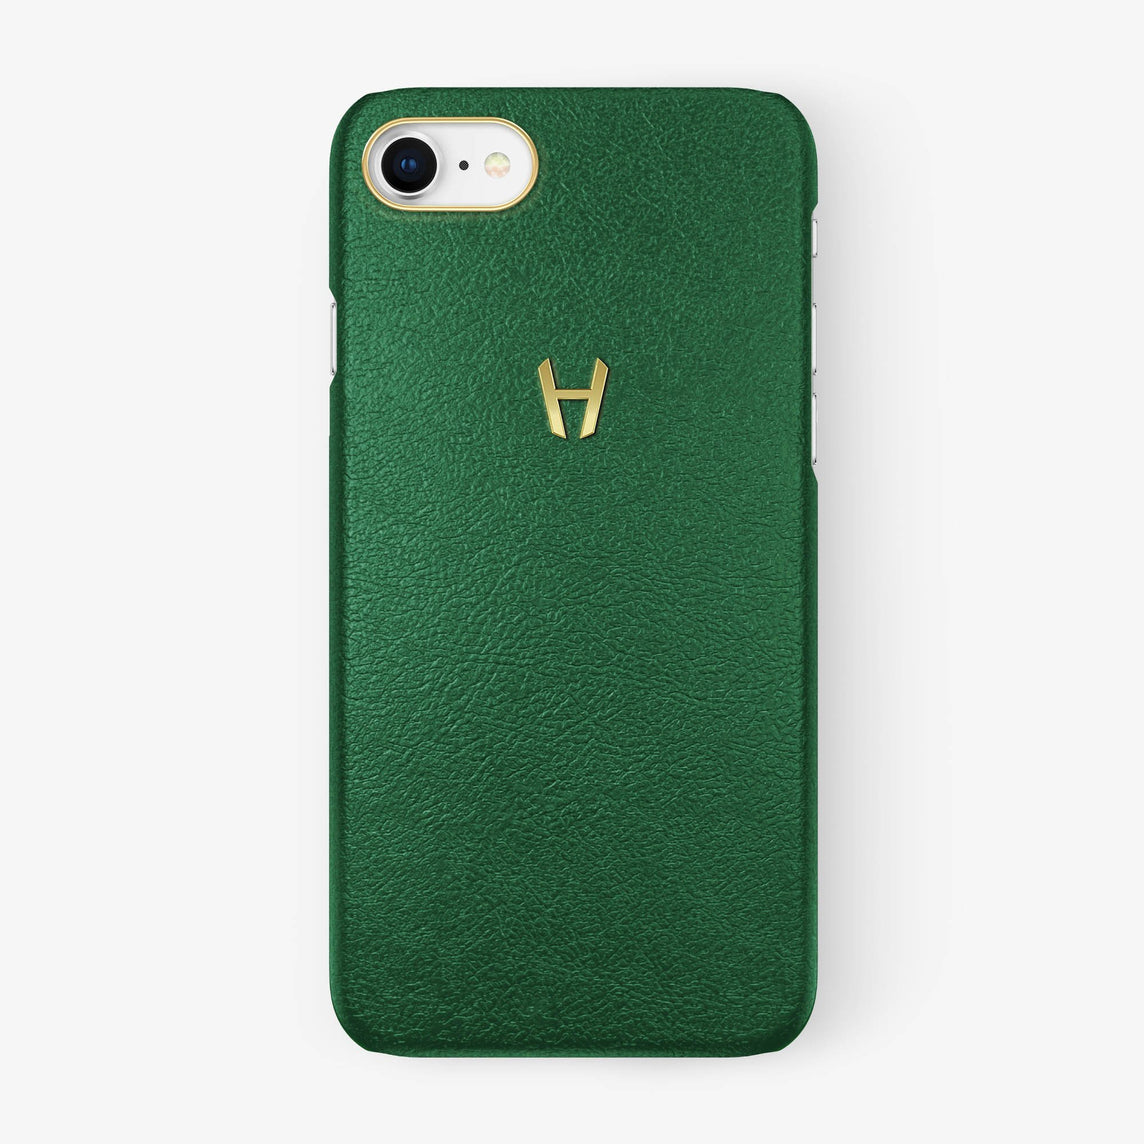 Calfskin [iPhone Case] [model:iphone-7-8-case] [colour:green] [finishing:yellow-gold]